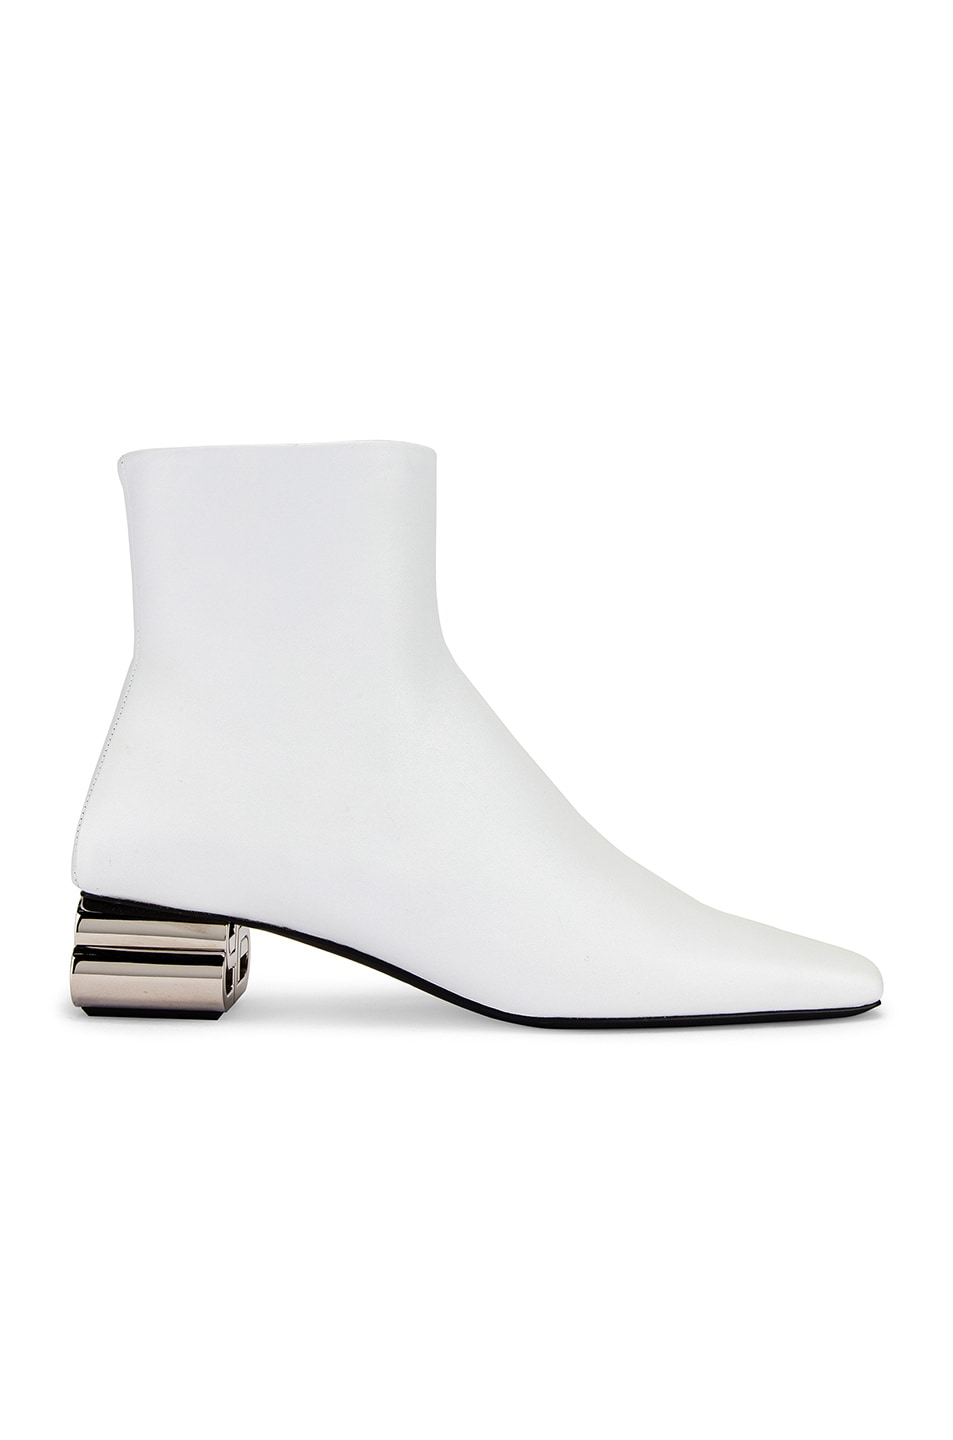 Image 1 of Balenciaga Typo Booties in White & Silver